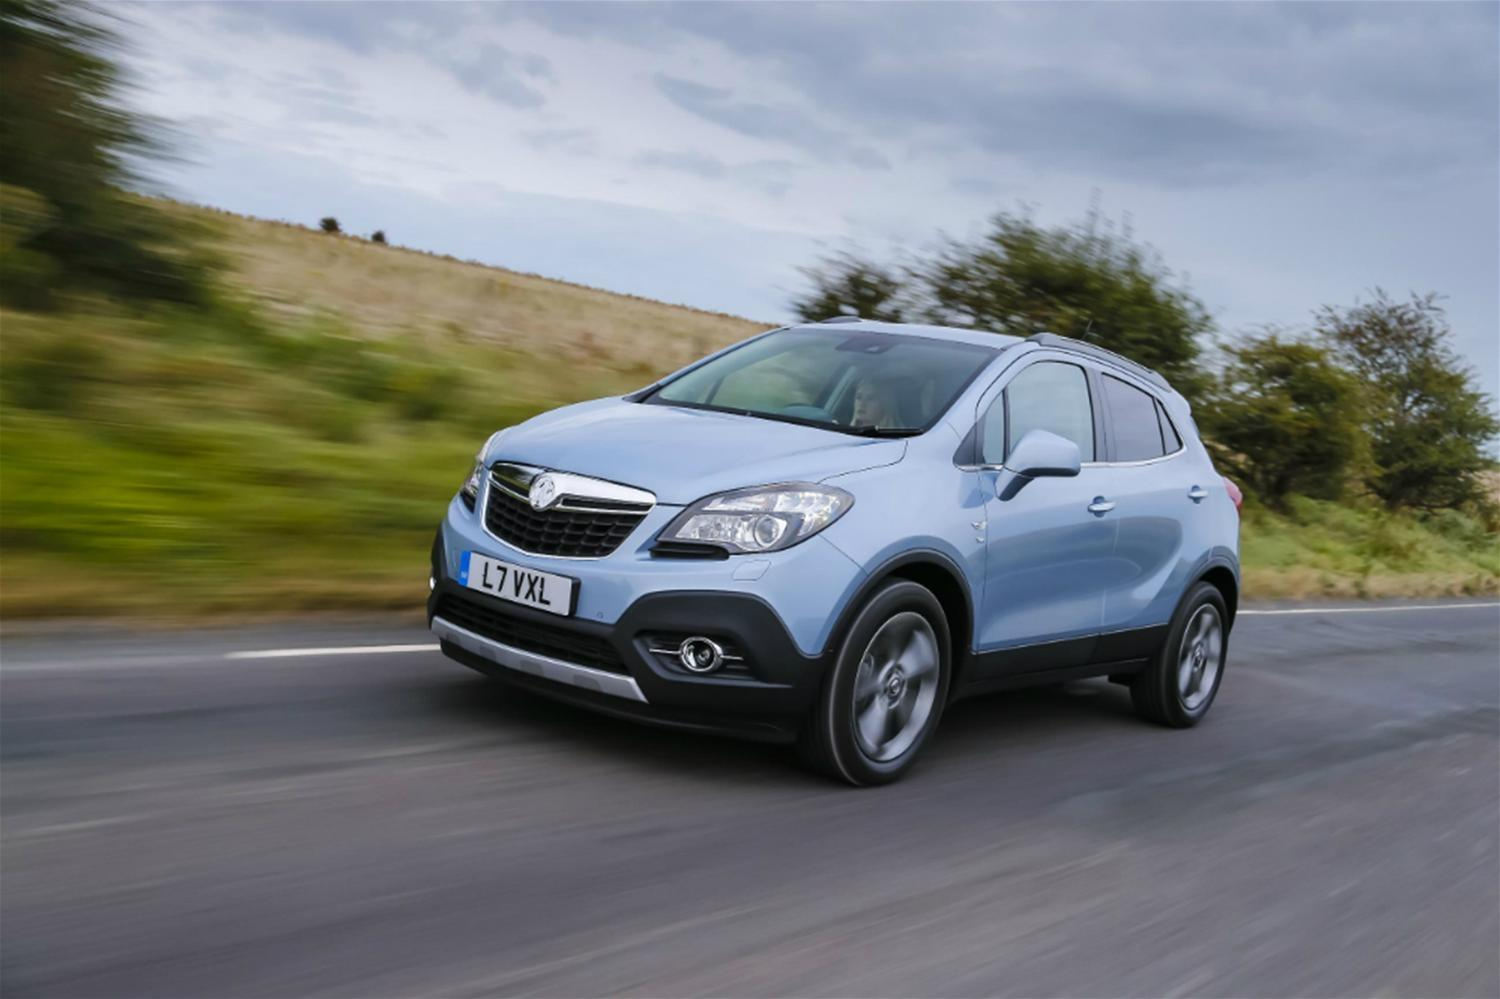 Vauxhall's New Year event offers 500 free fuel